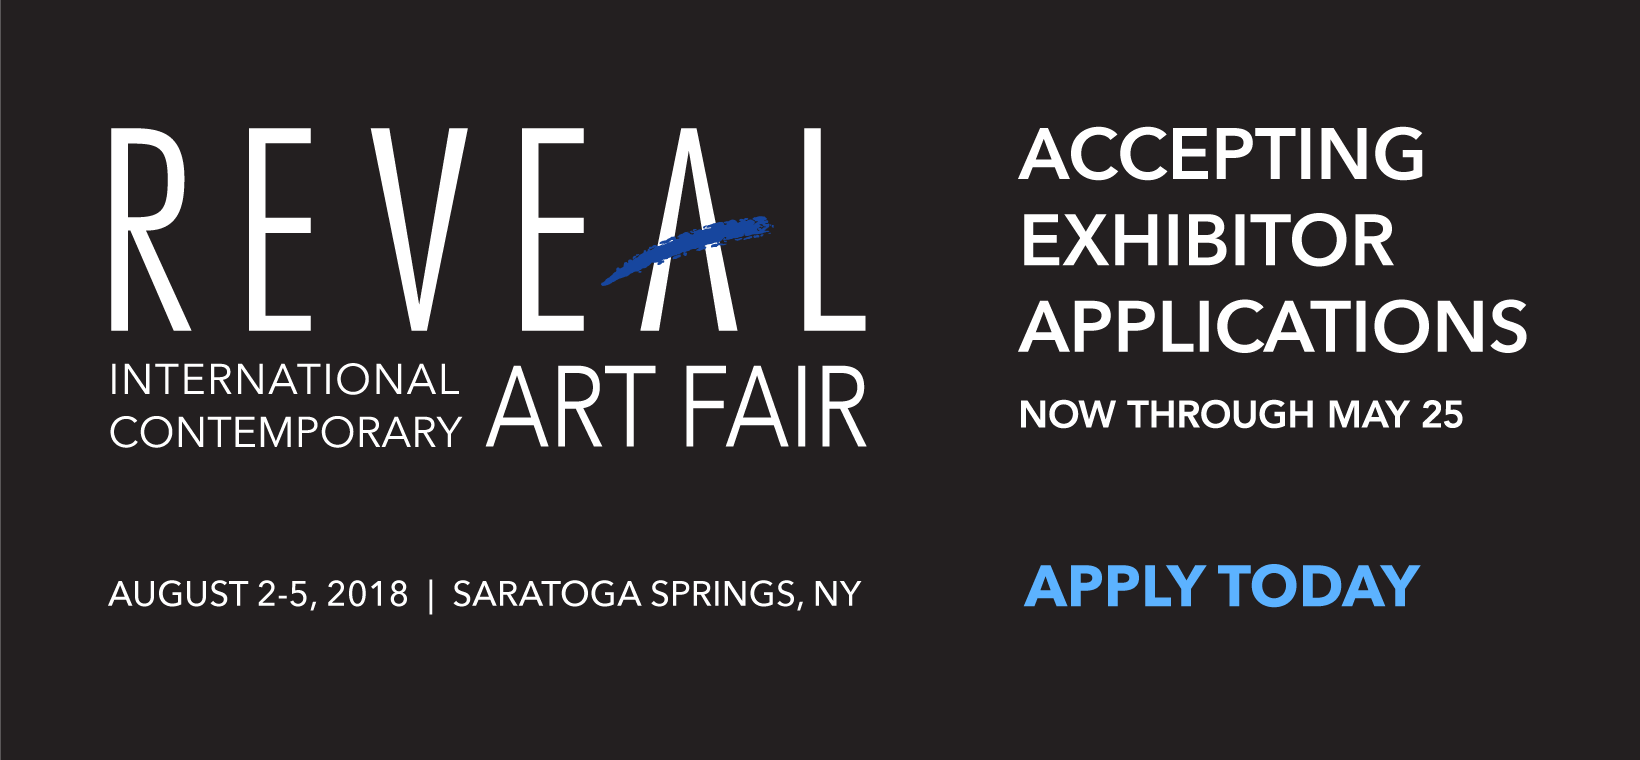 Accepting Exhibitor Applications Thru May 25